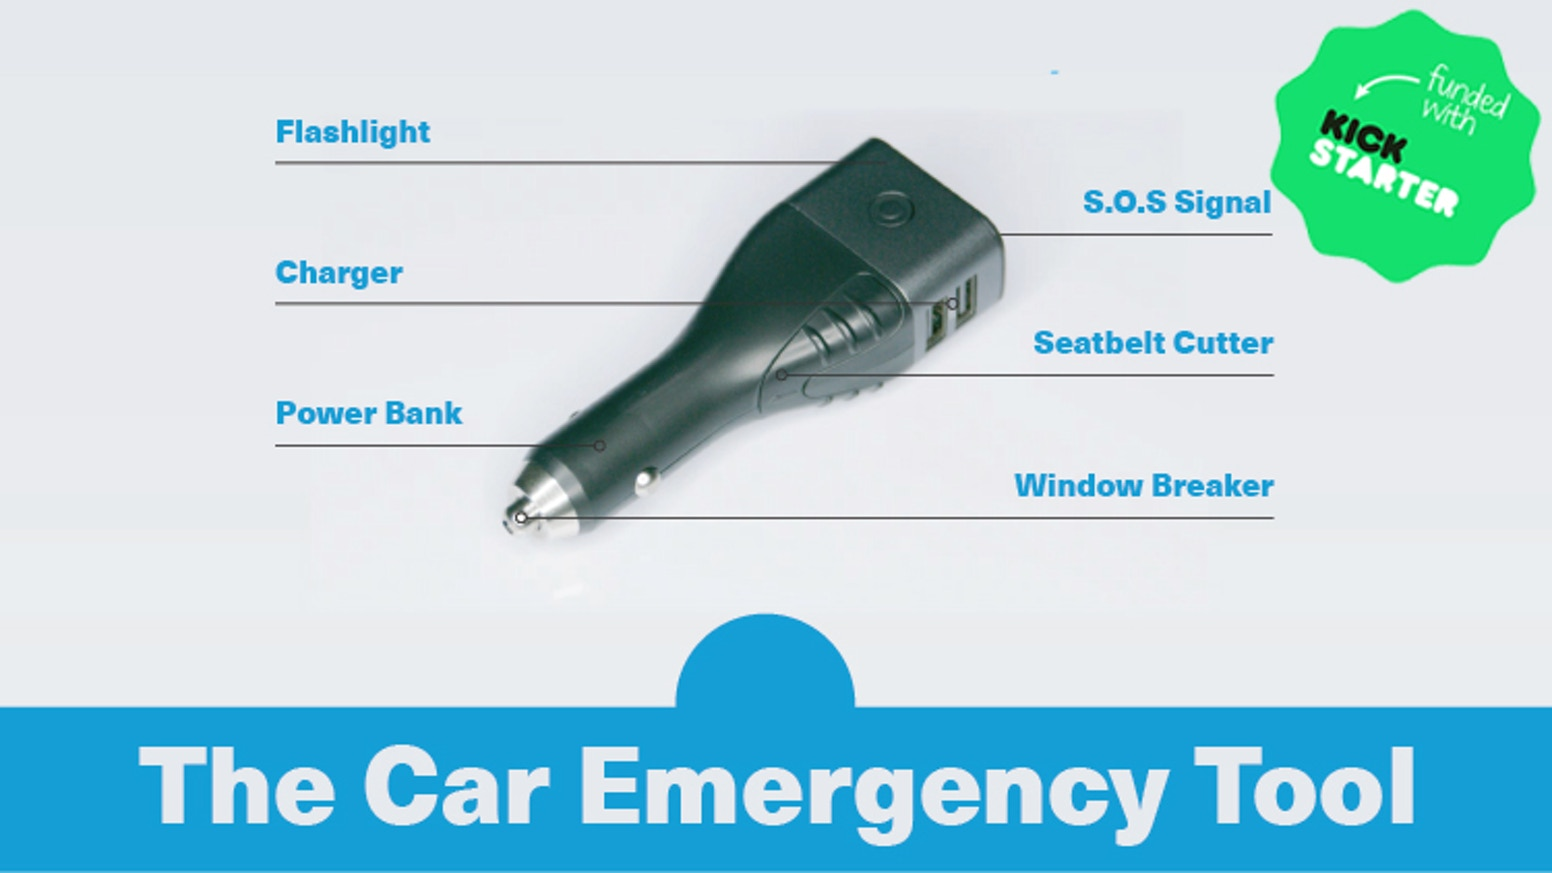 The car EDC tool that can save your life. Use it as car charger, power bank, LED torch, S.O.S beacon, window hammer, seatbelt cutter.